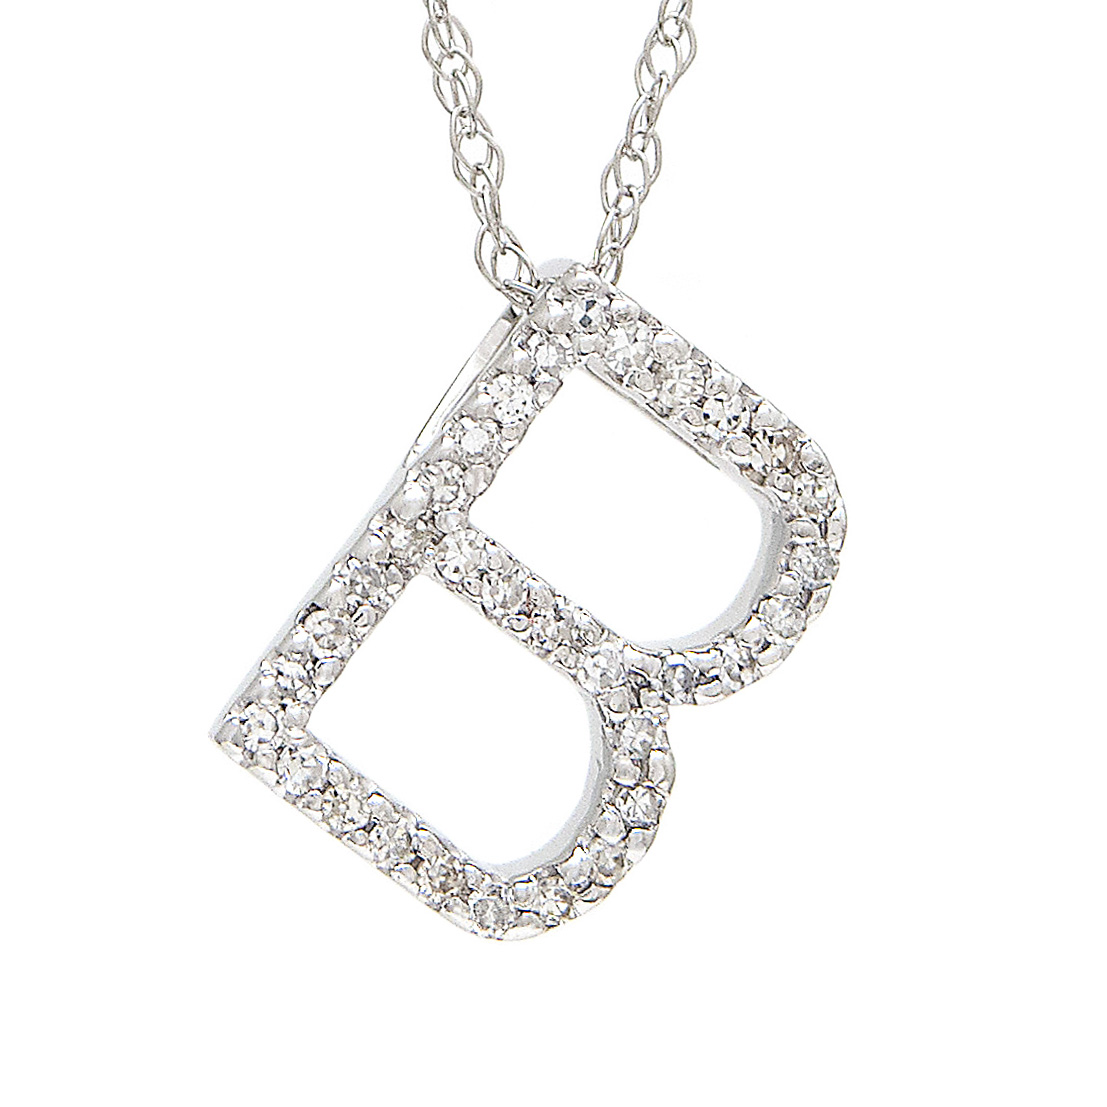 White Gold Initial Single Pave Diamond Pendant  by Lau International